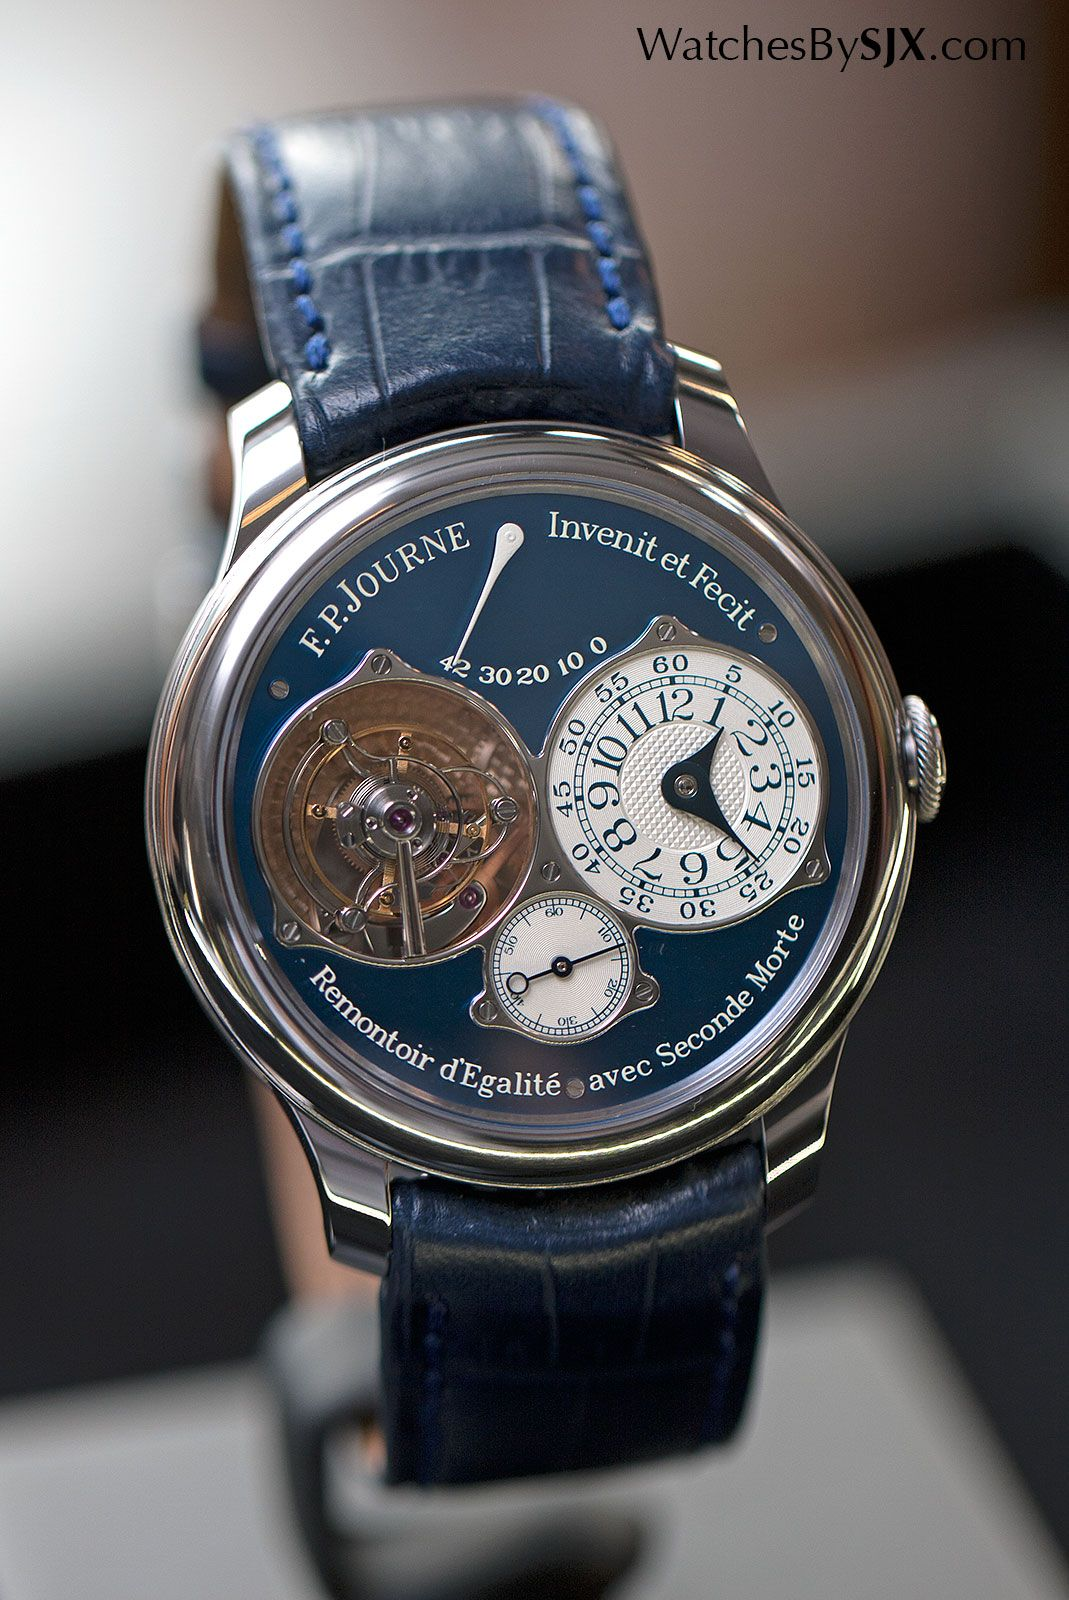 937245c9019 Watches By SJX  Hands-On with the F.P. Journe Tourbillon Souverain Bleu for  Only Watch 2015